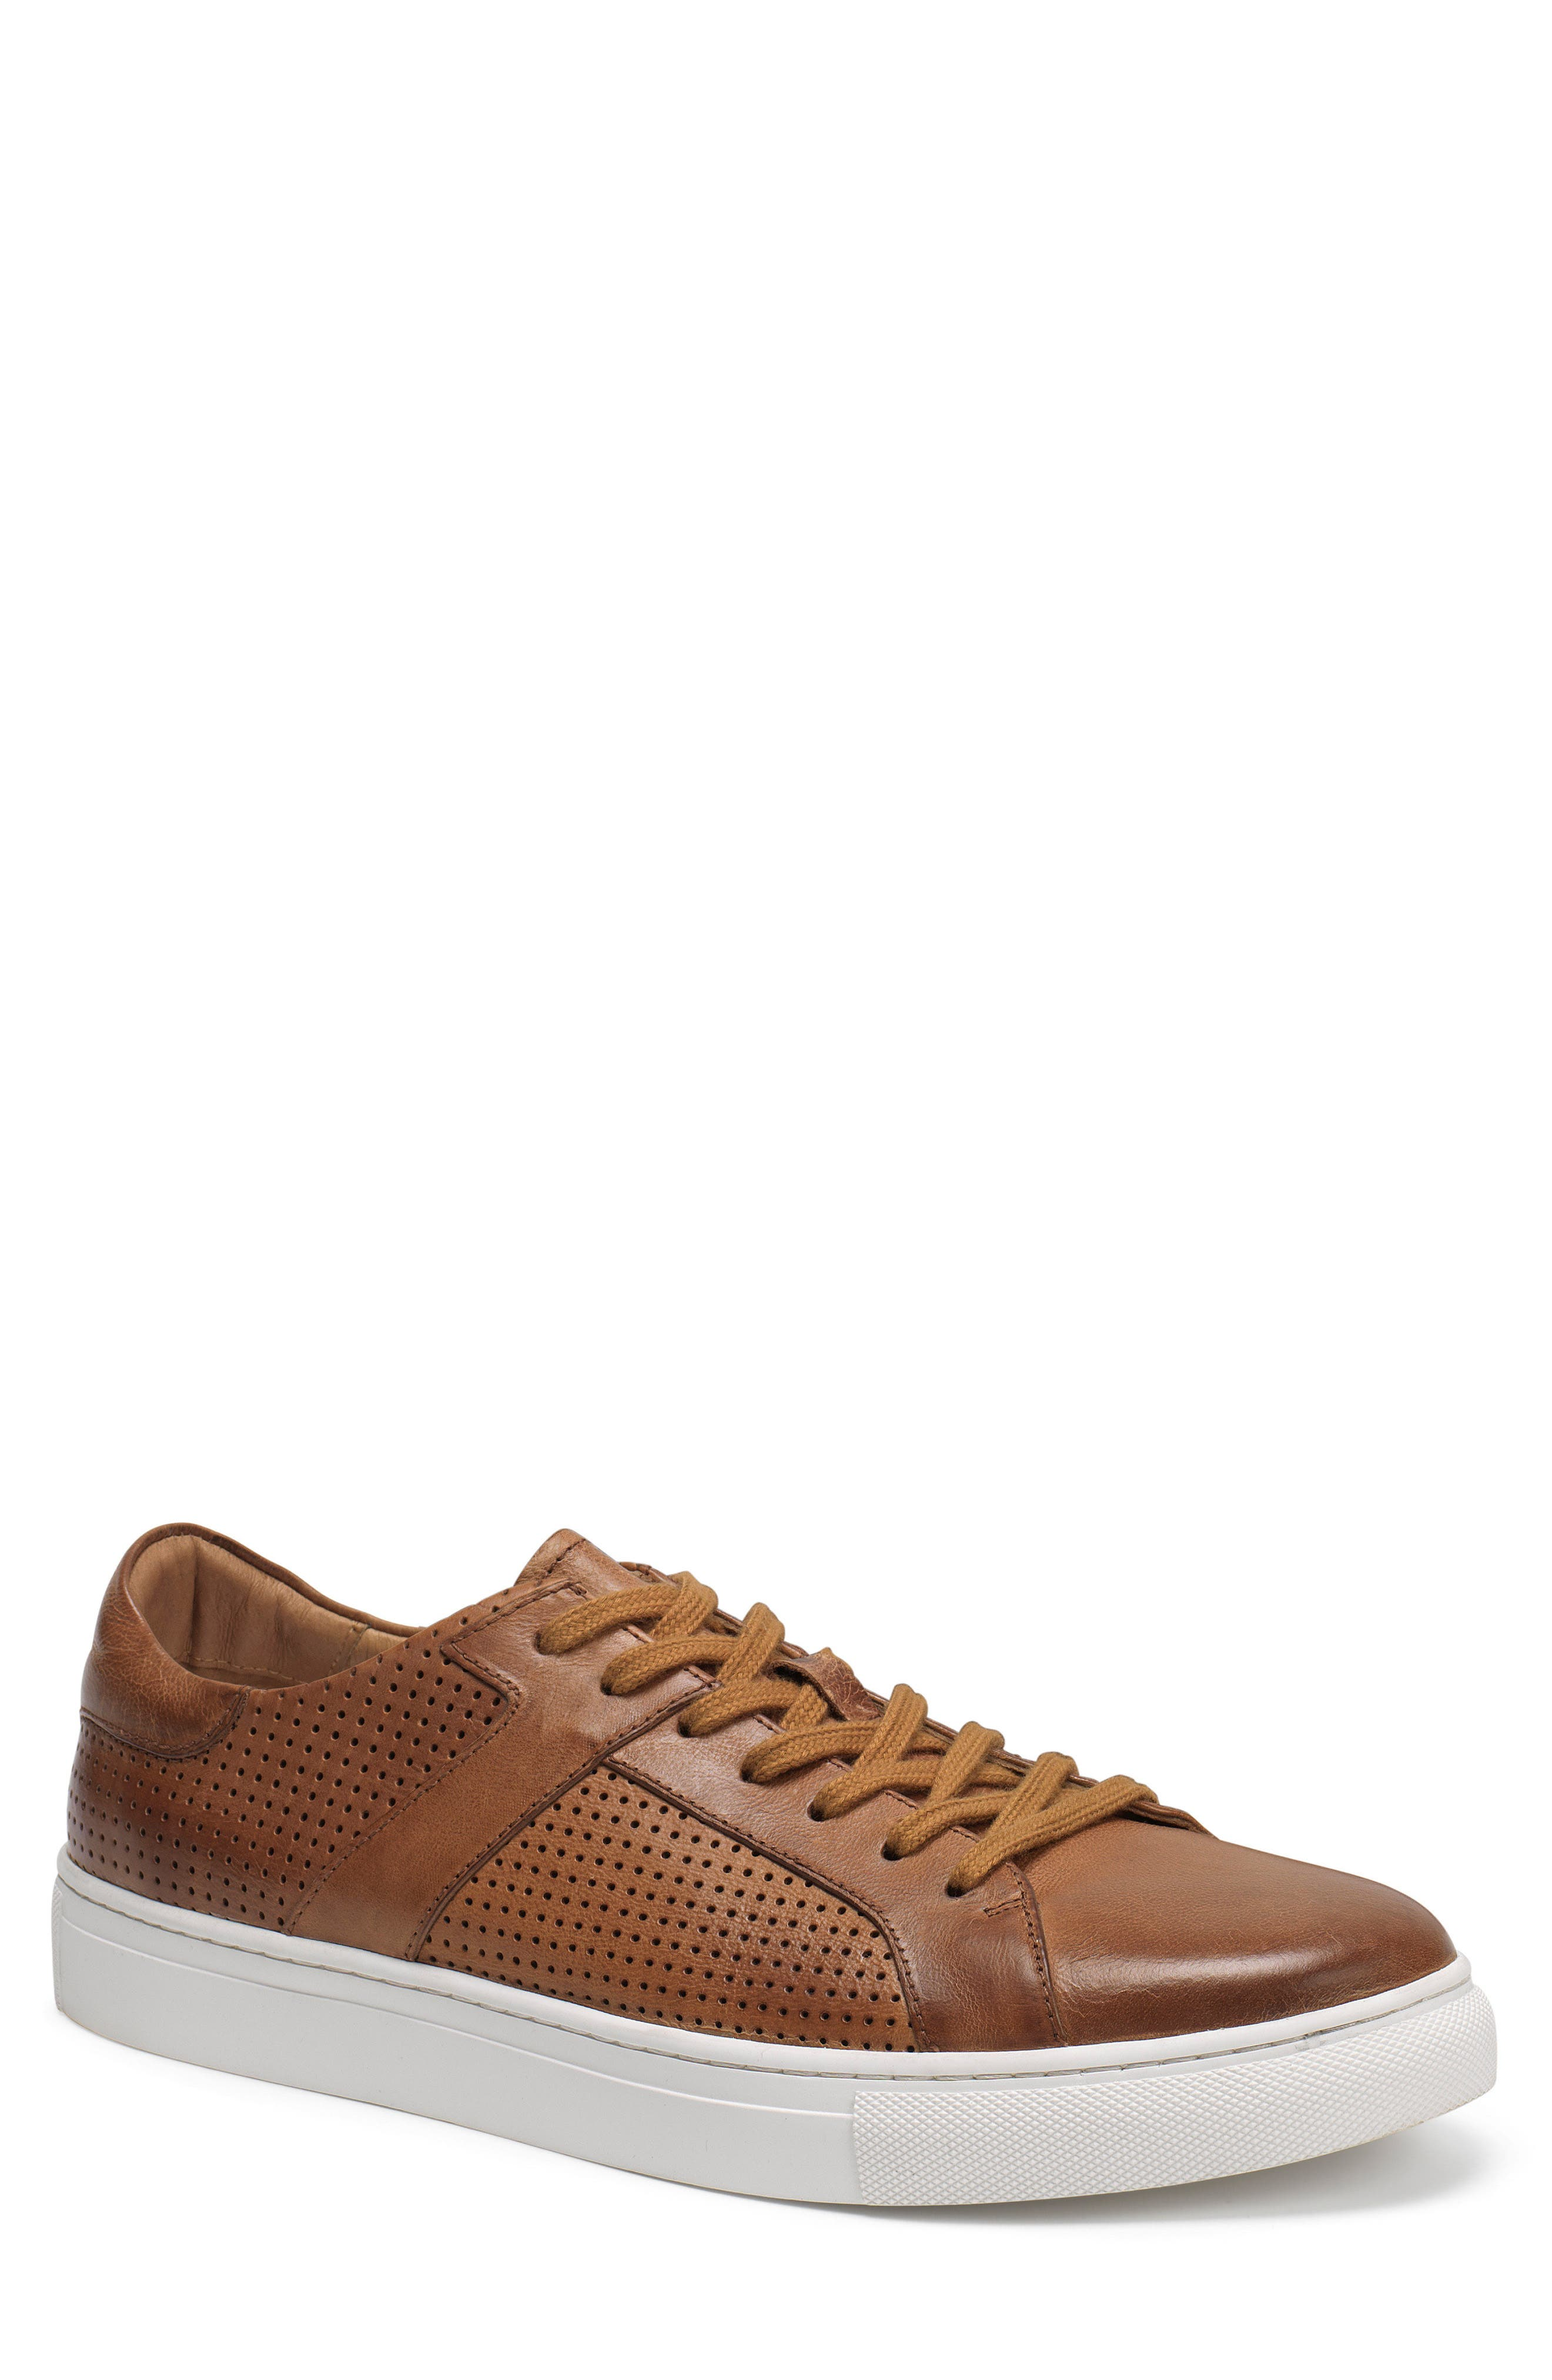 Aaron Sneaker,                             Main thumbnail 1, color,                             TAN LEATHER